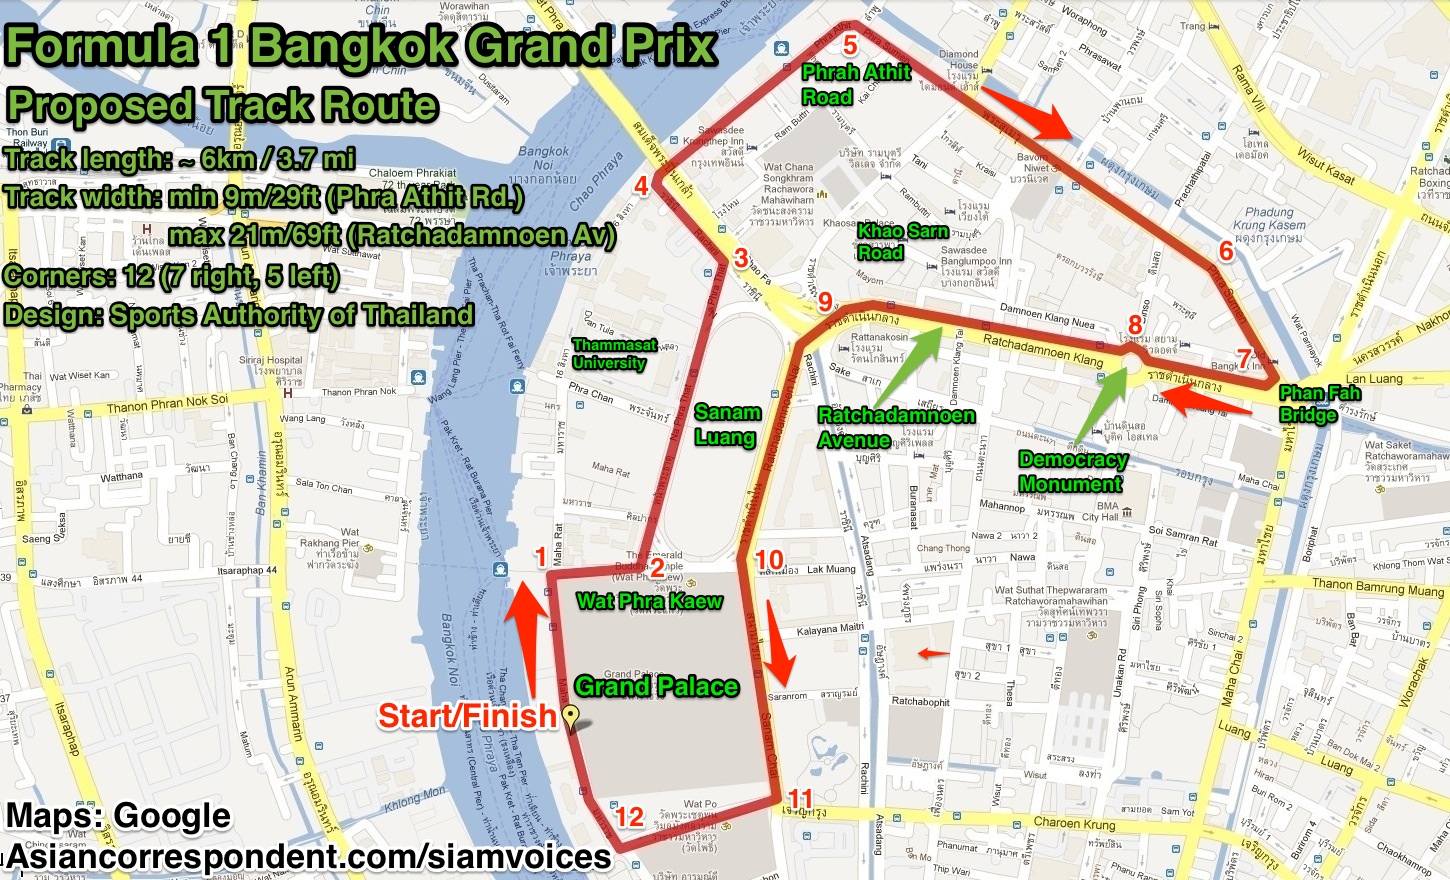 Bangkok at odds over F1 race (video)